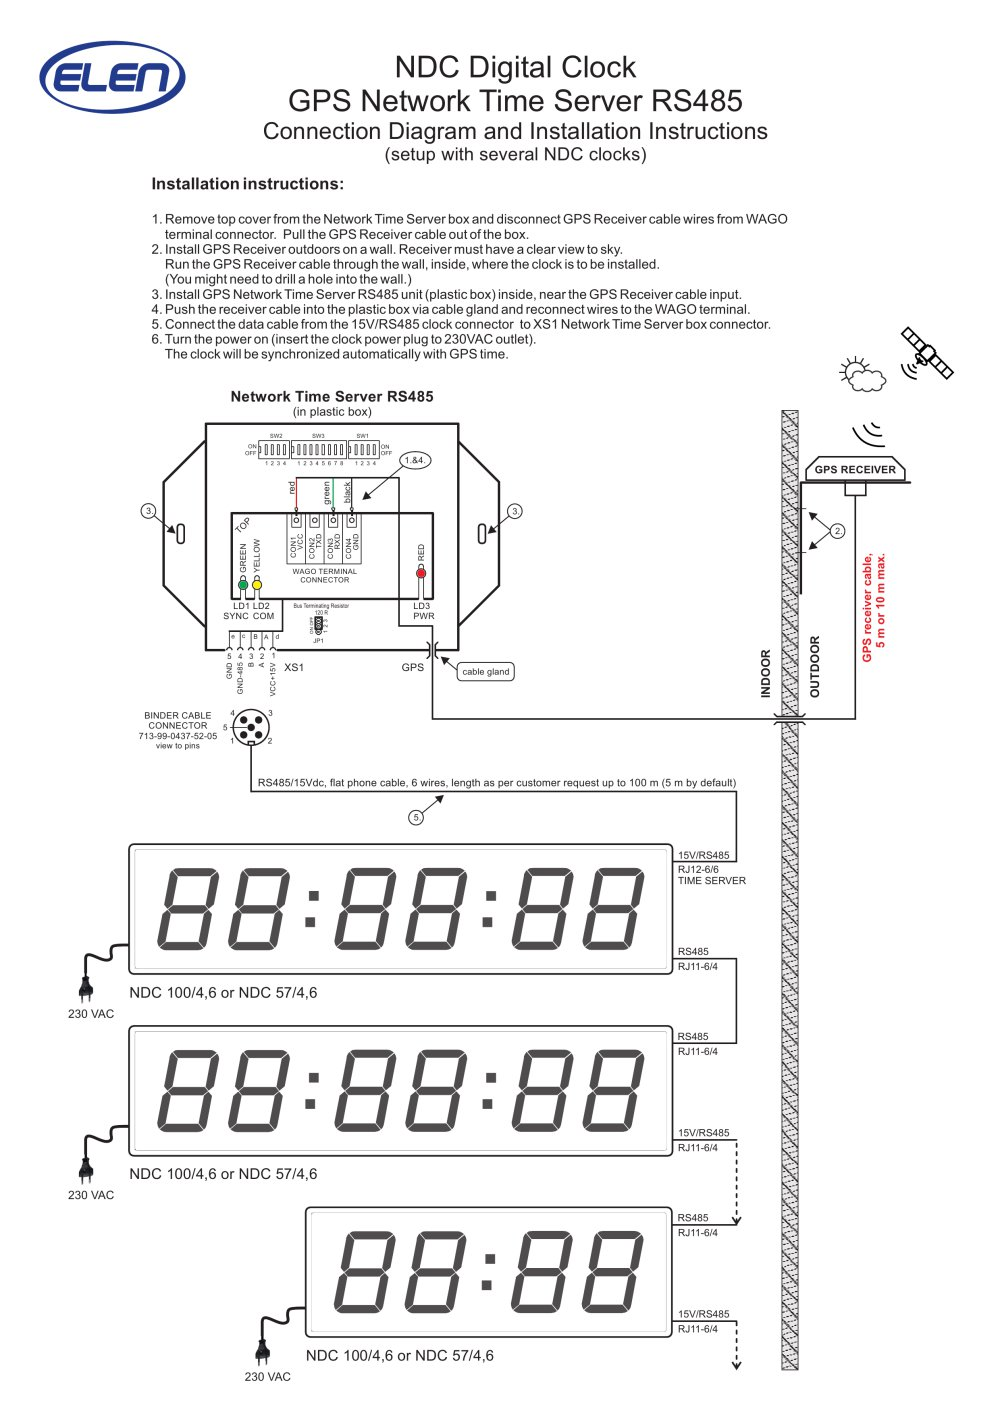 Ndc Digital Clock Gps Network T Ime Server Rs485 Elen Sro 4 Wiring Diagram 1 2 Pages